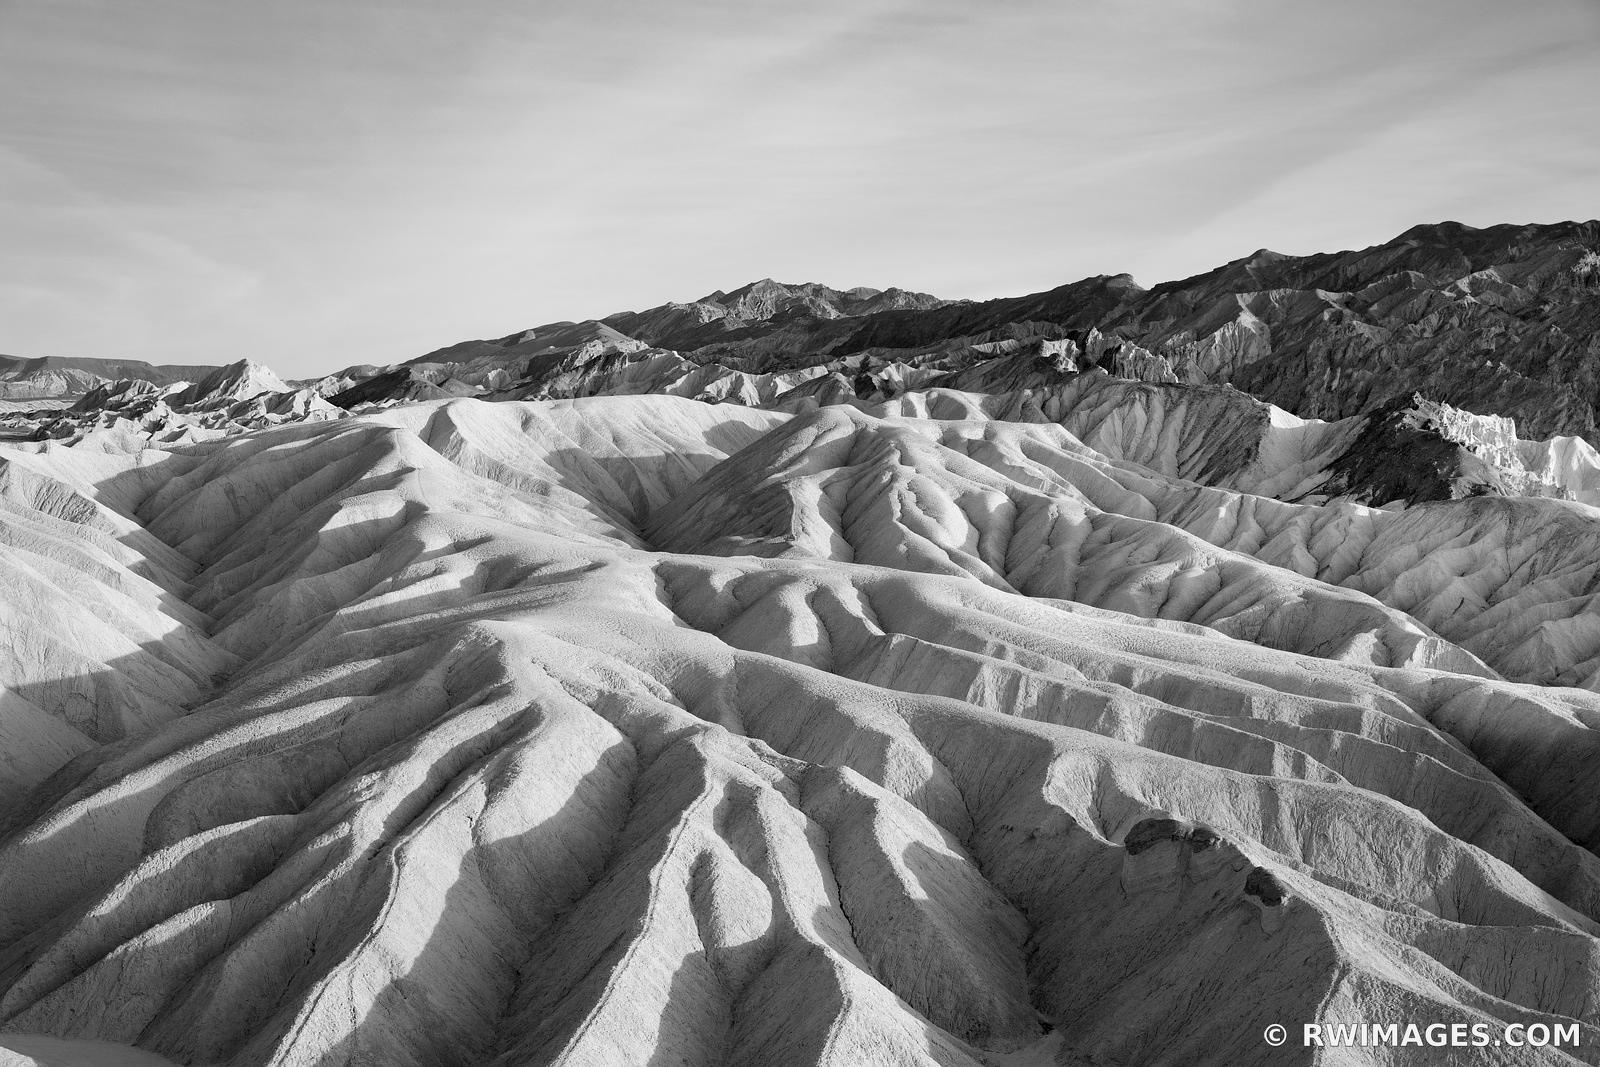 ZABRISKIE POINT BADLANDS DEATH VALLEY CALIFORNIA AMERICAN SOUTHWEST BLACK AND WHITE DESERT LANDSCAPE